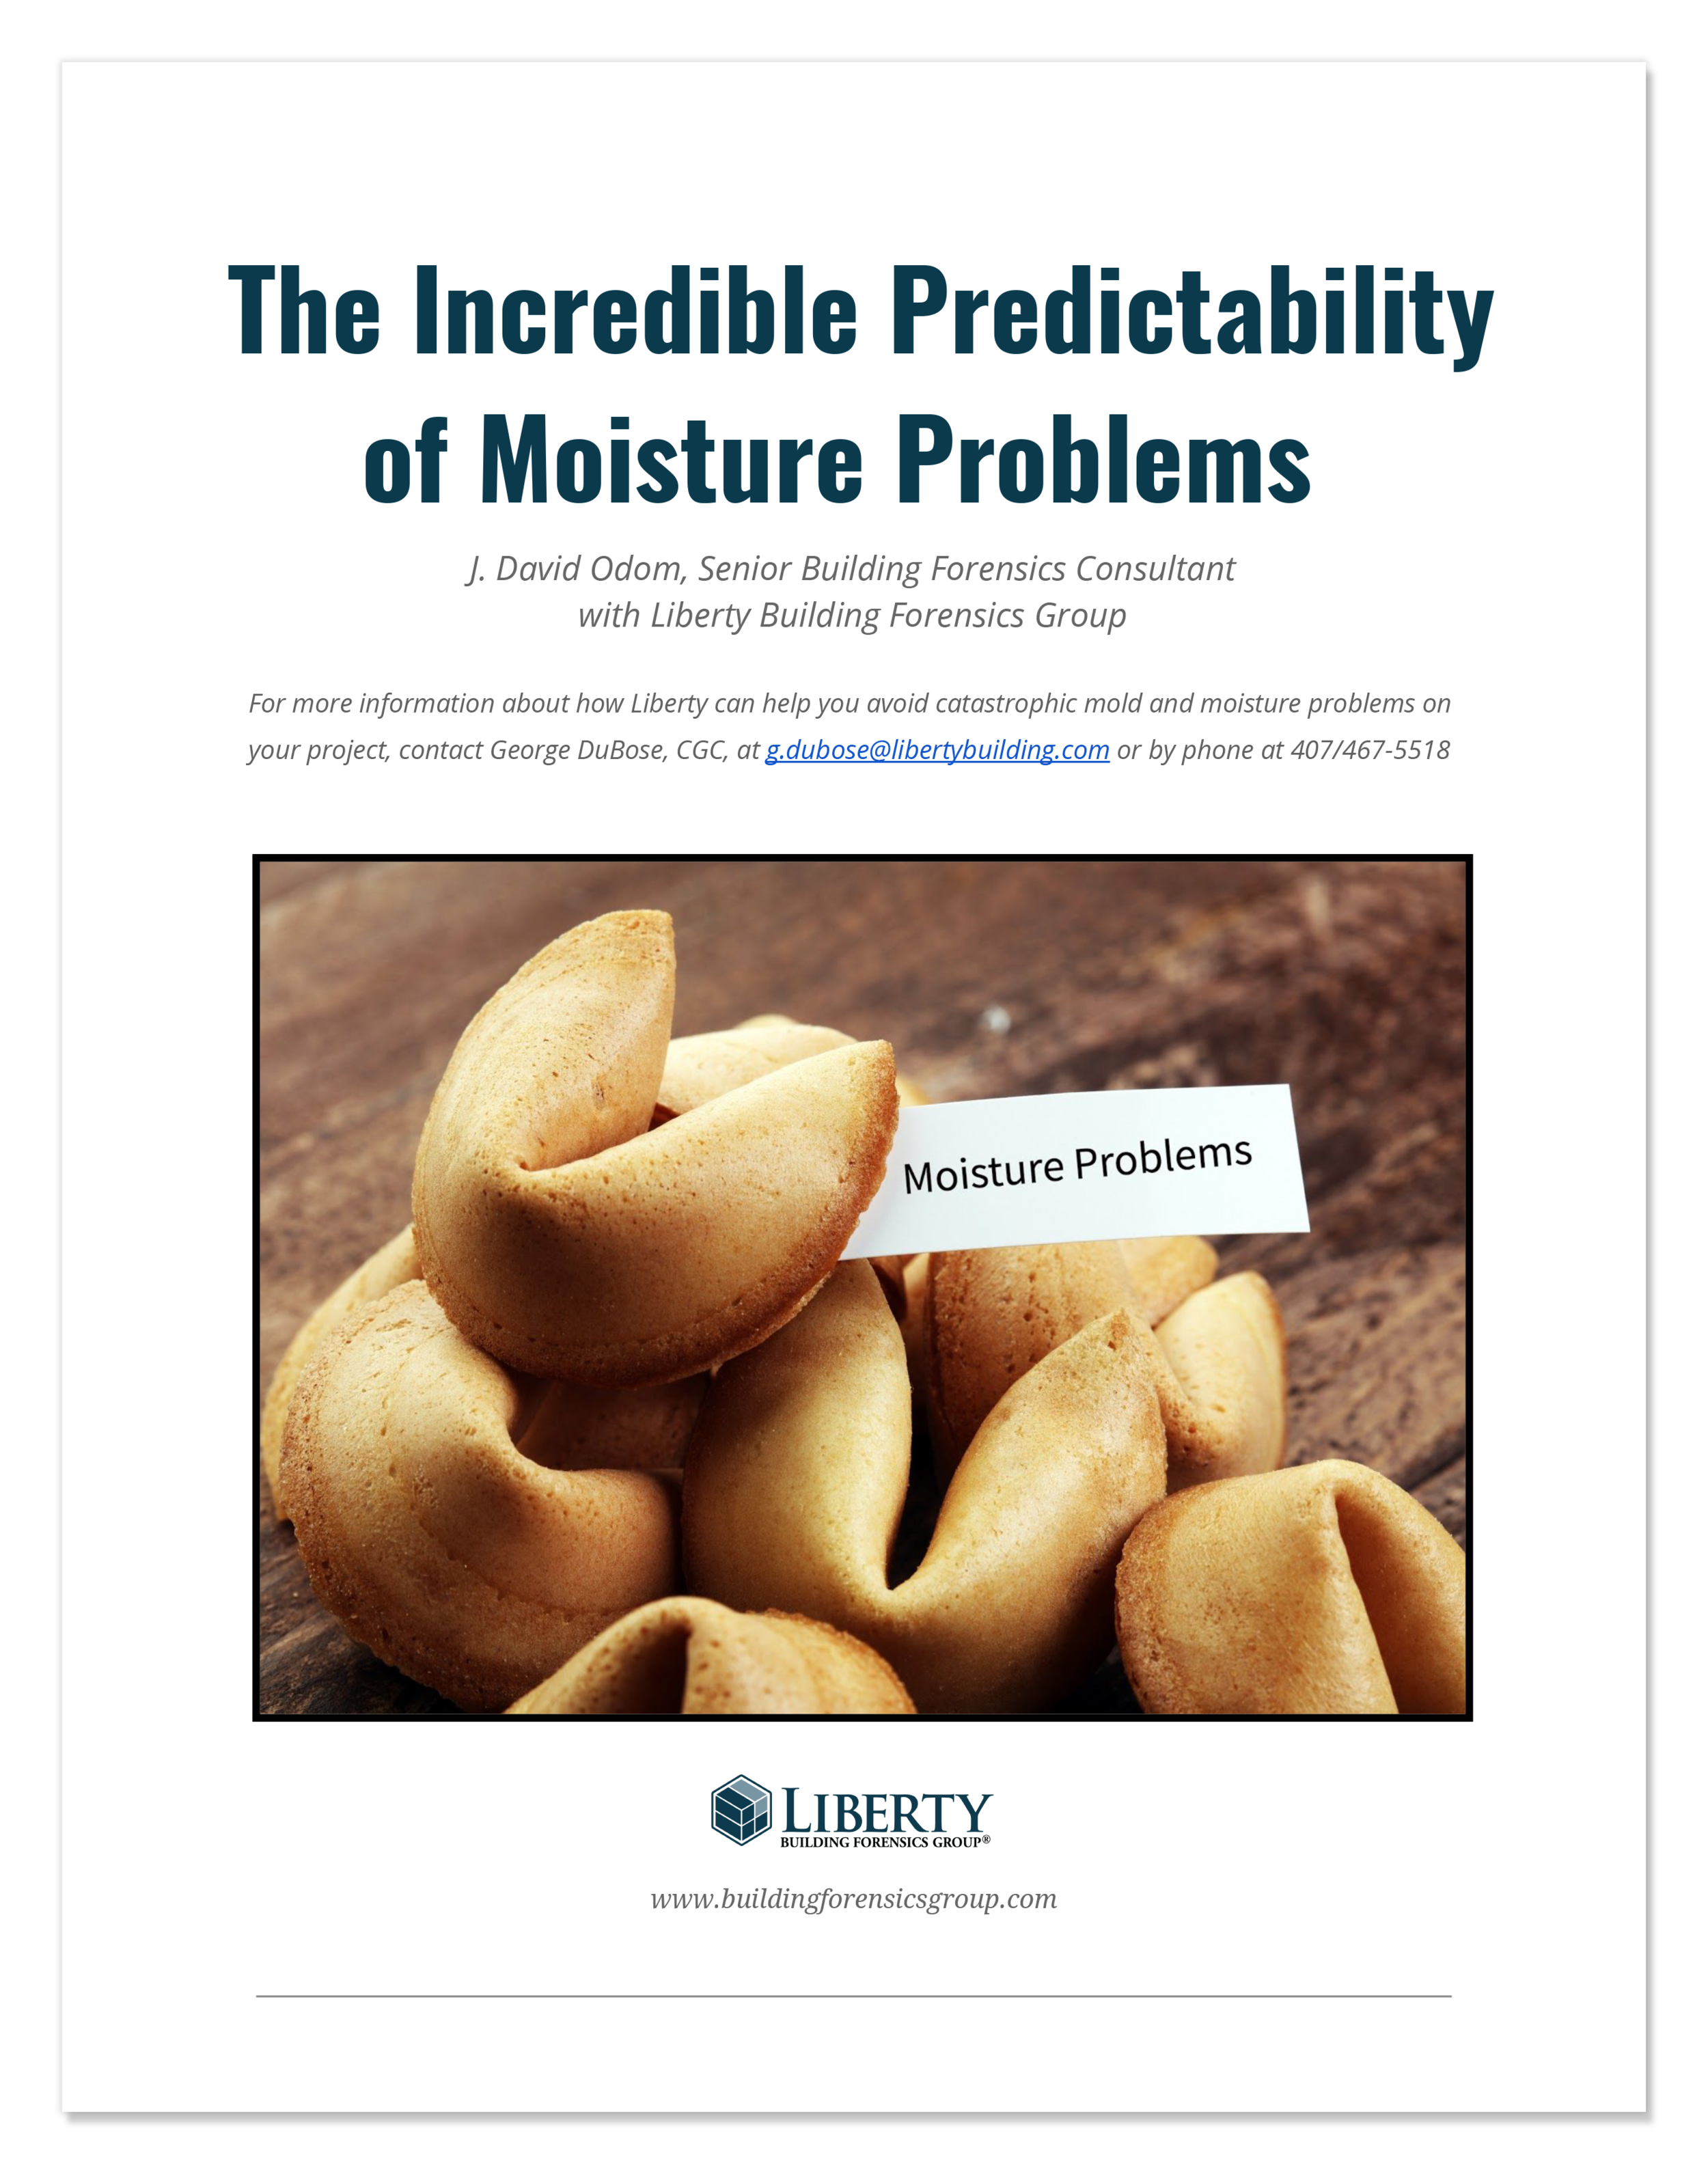 EBook_TheIncrediblePredictabilityofMoistureProblems_LBFG (dragged).png